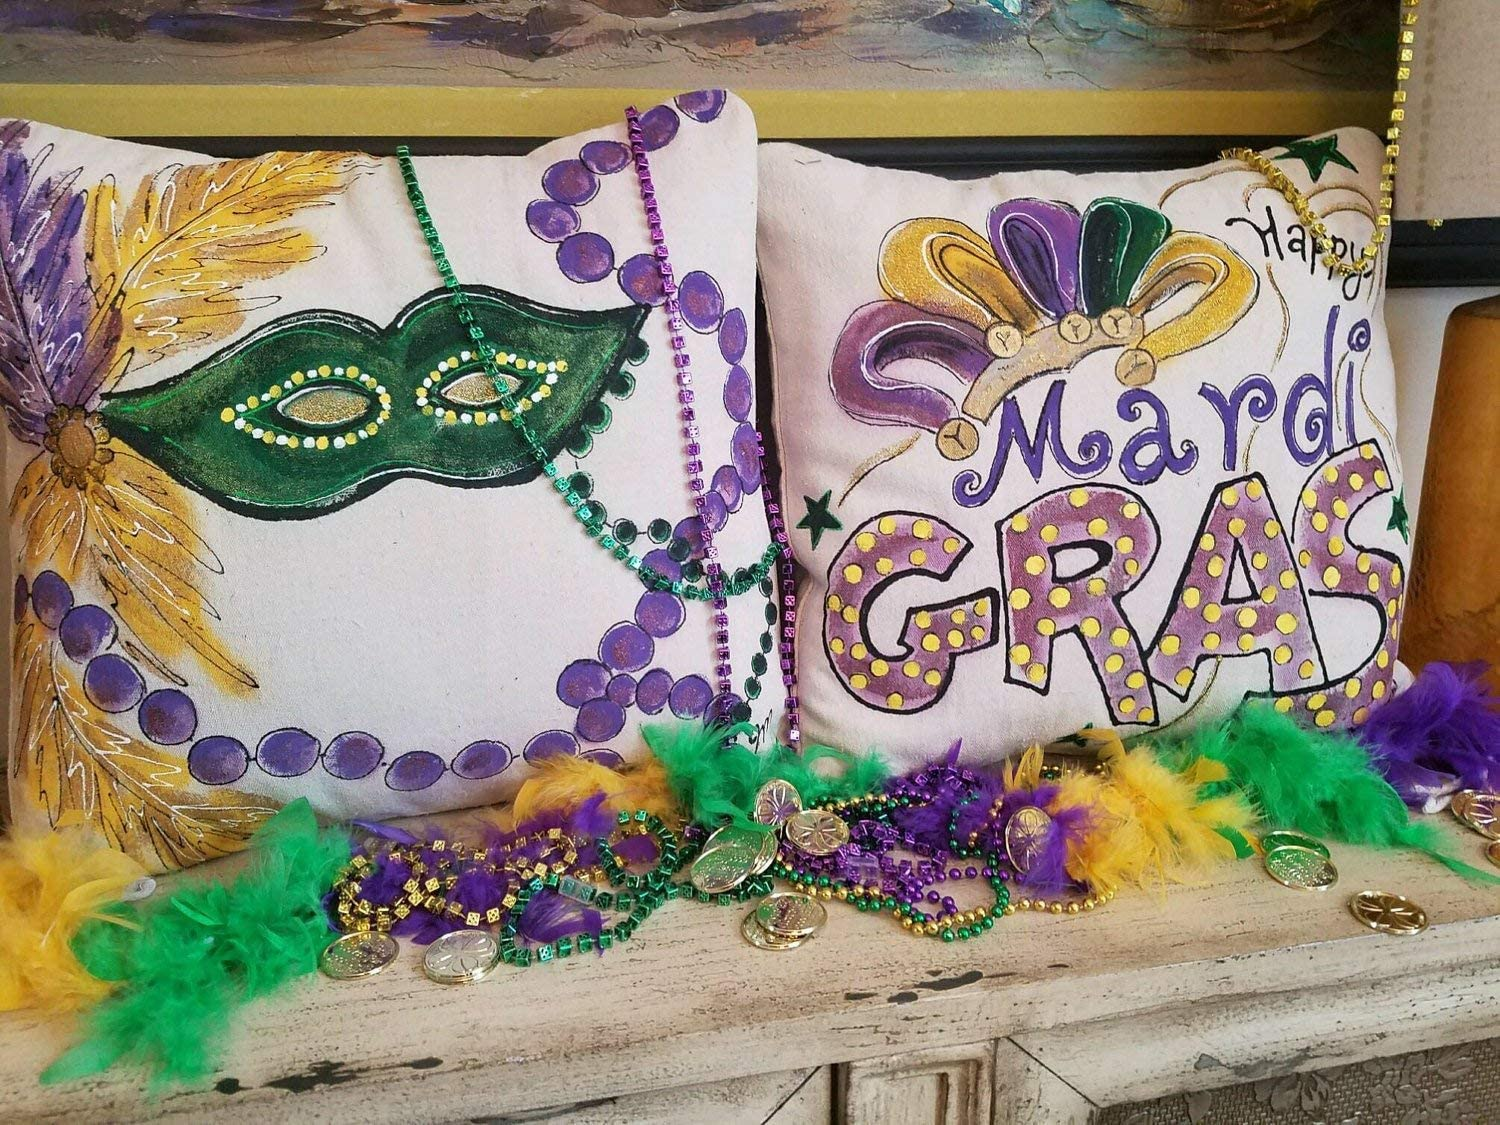 CELYCASY Mardi Gras Mask Decor Set Beads New Orleans French Quote Accent Pillows Indoor Outdoor Cushions Handpainted Pillow Cover